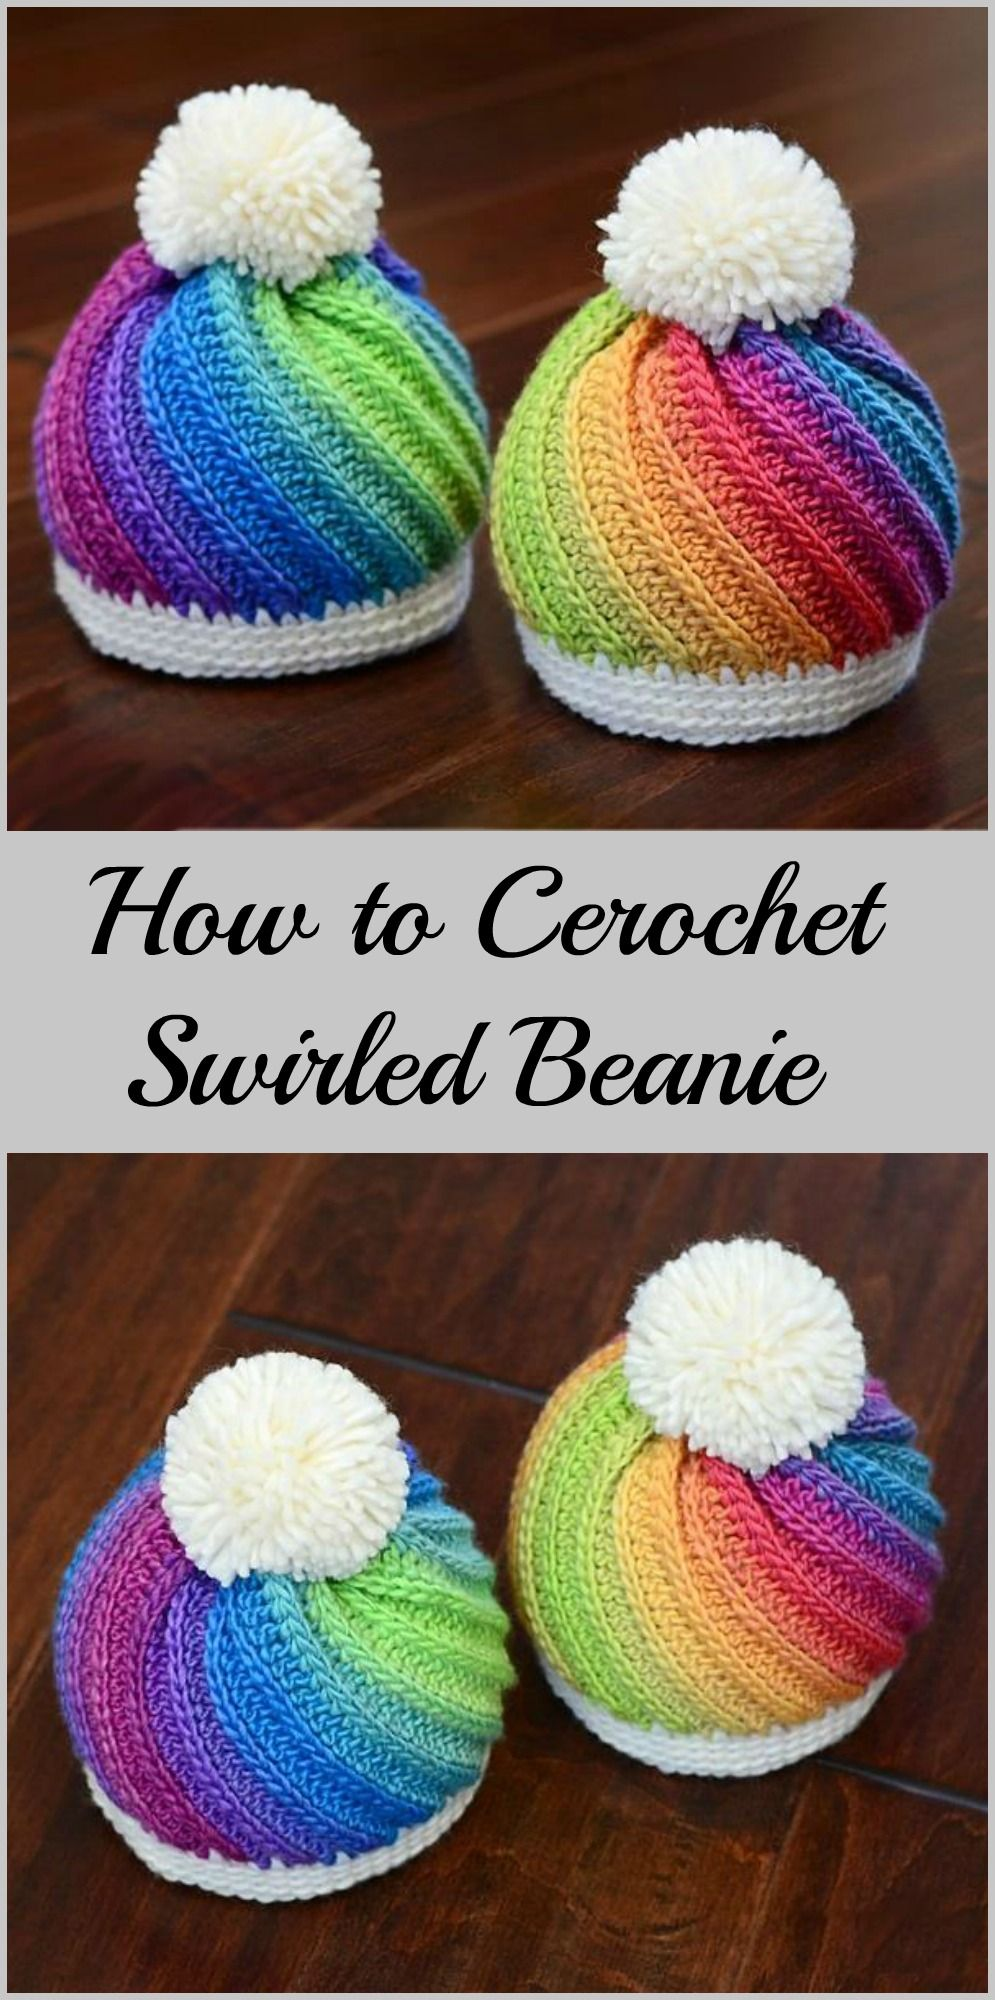 How to Crochet Staircase Stitch Slouchy Hat - Free | Mütze, Häkeln ...